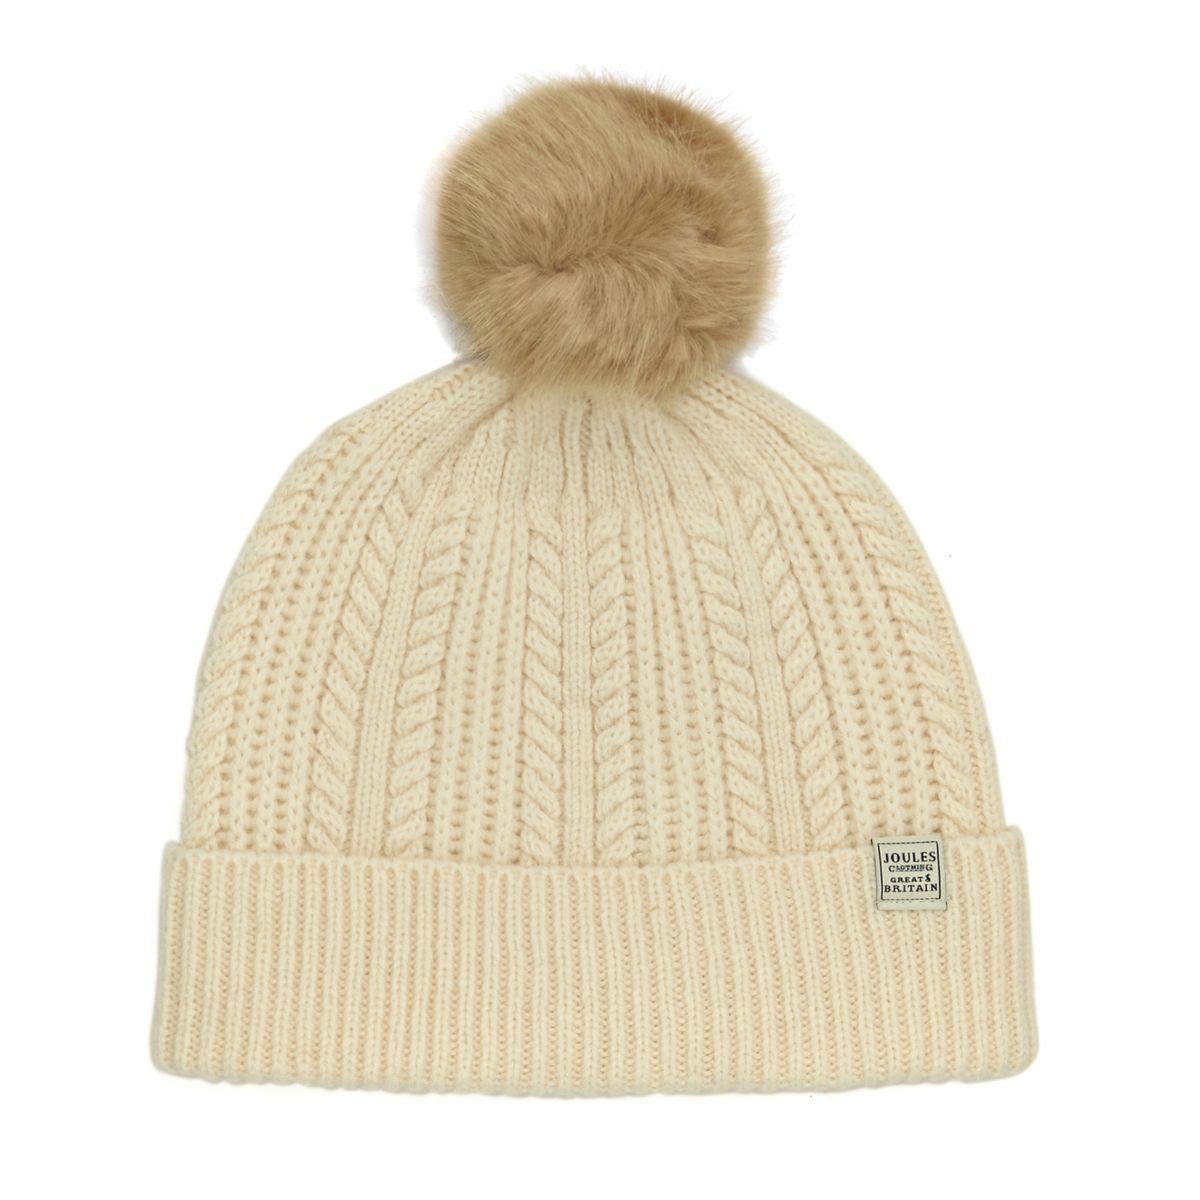 d9e55fad14ac9 Buy Joules Bobble Hat Cream with great prices